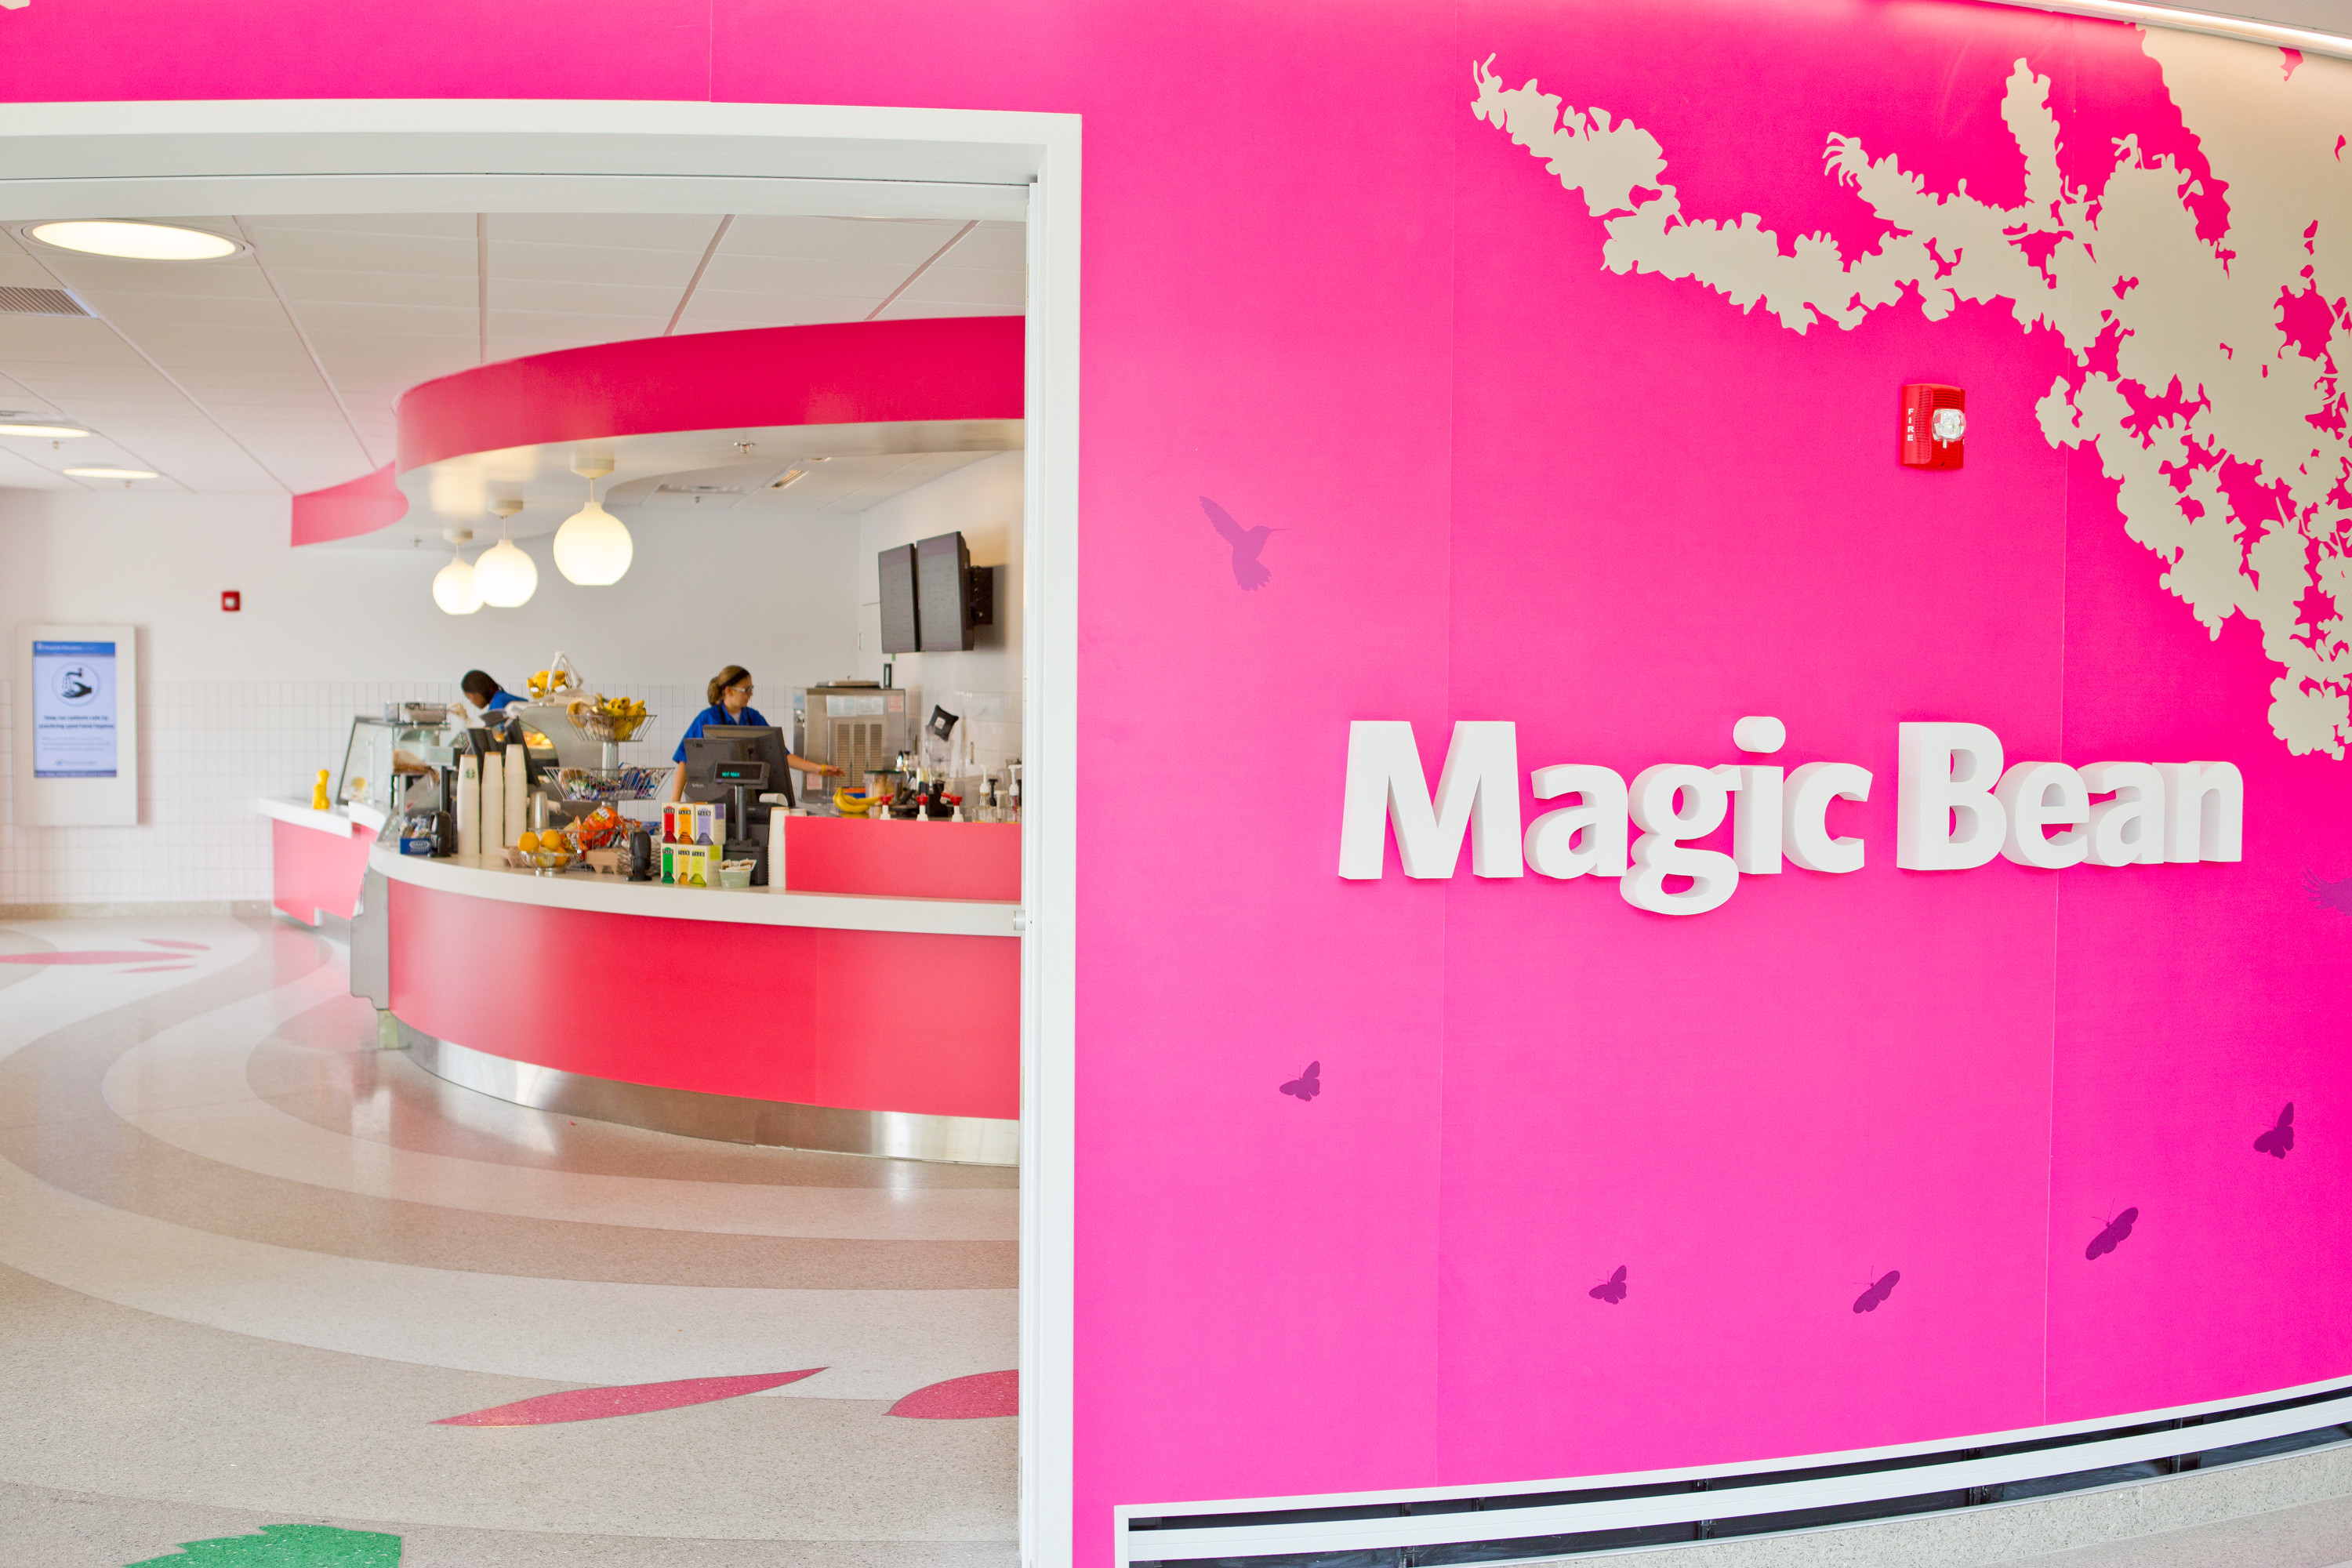 Magic Bean Cafe